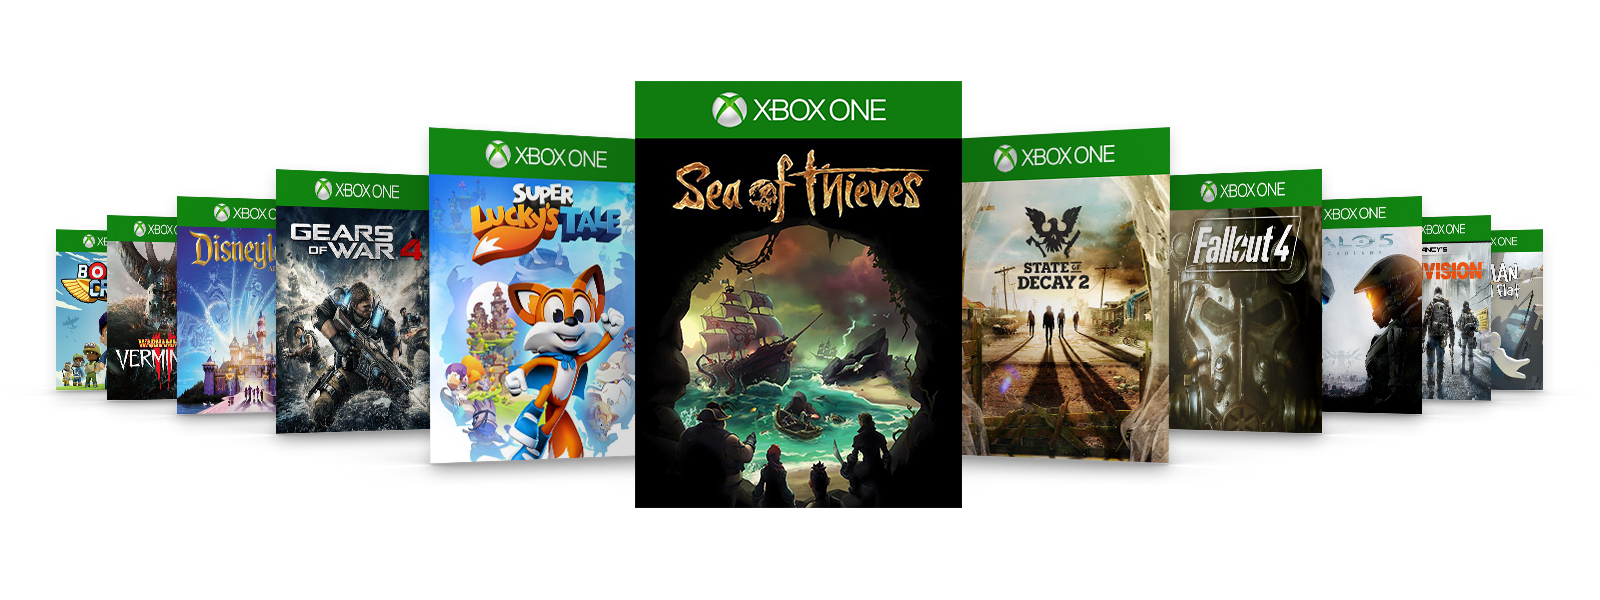 An image of some games that are available on Xbox Game Pass